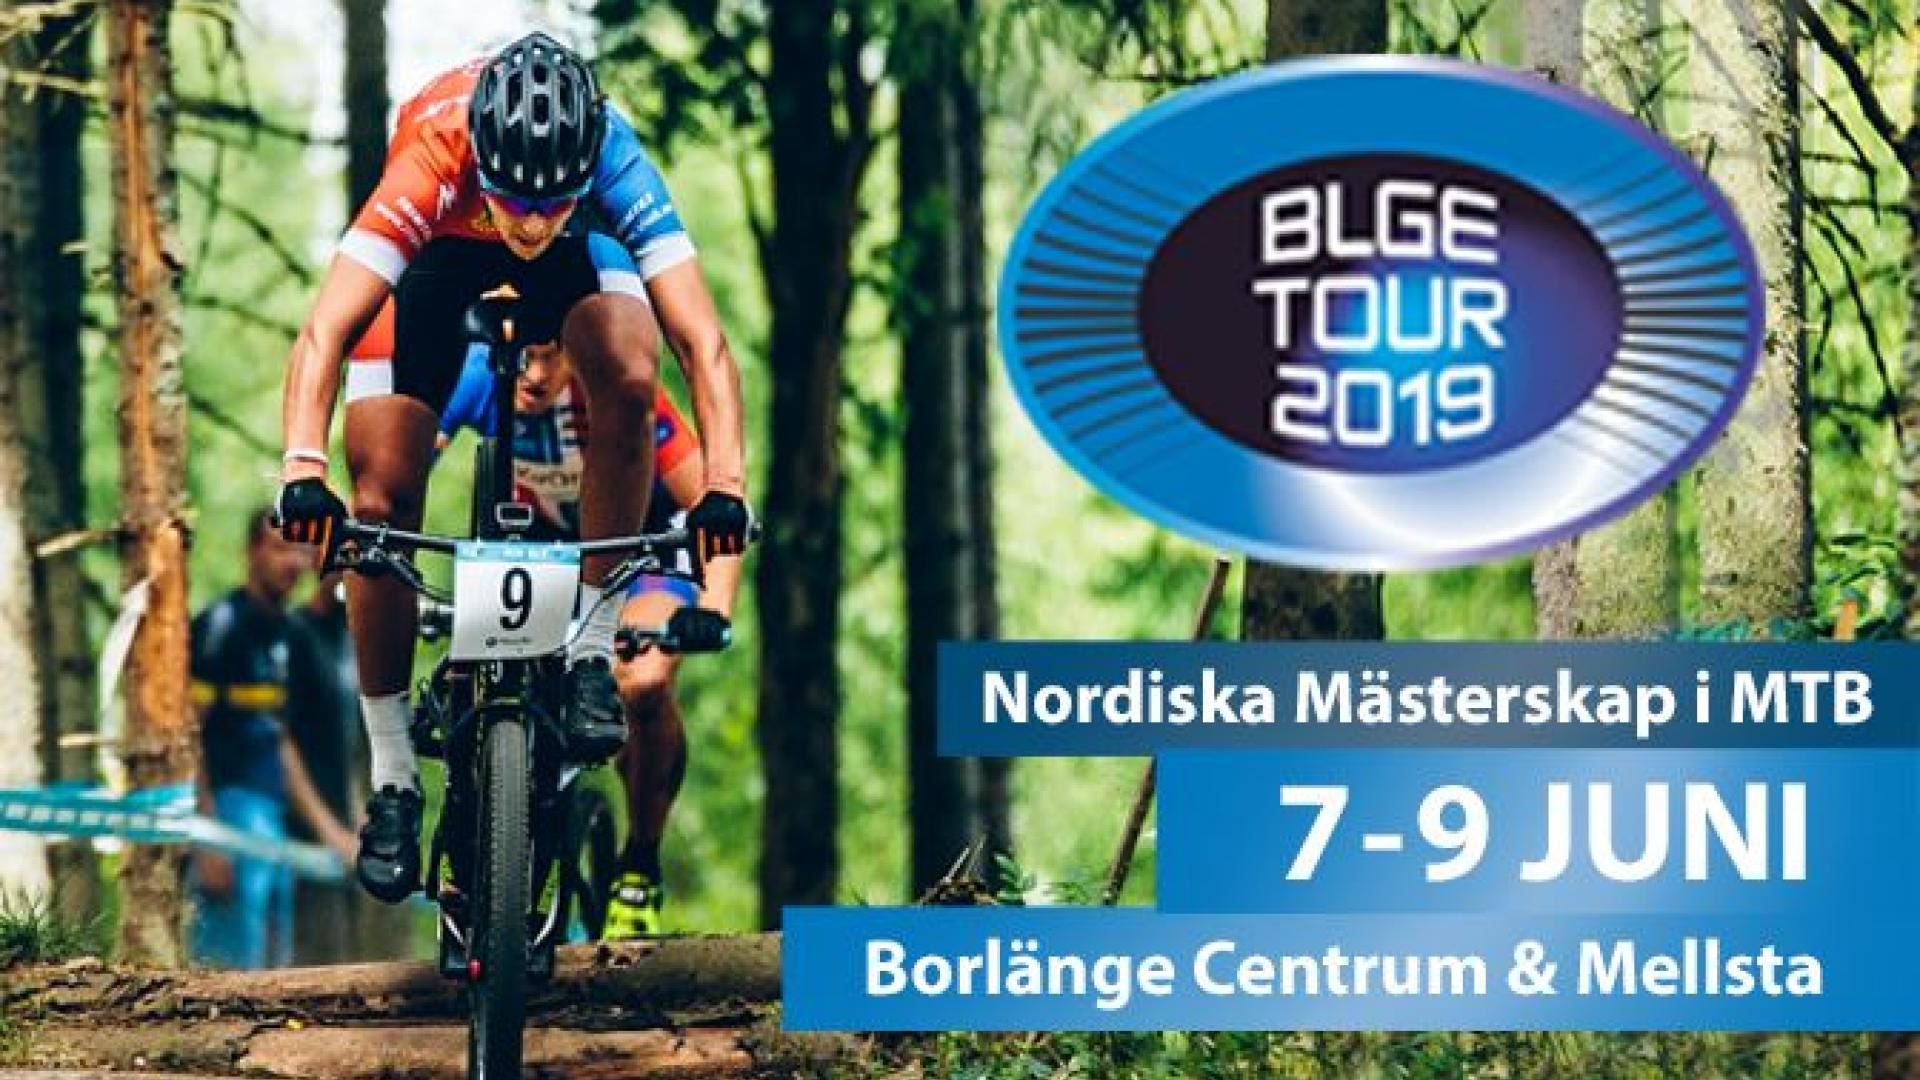 Borlänge Tour - Crosscountry E3